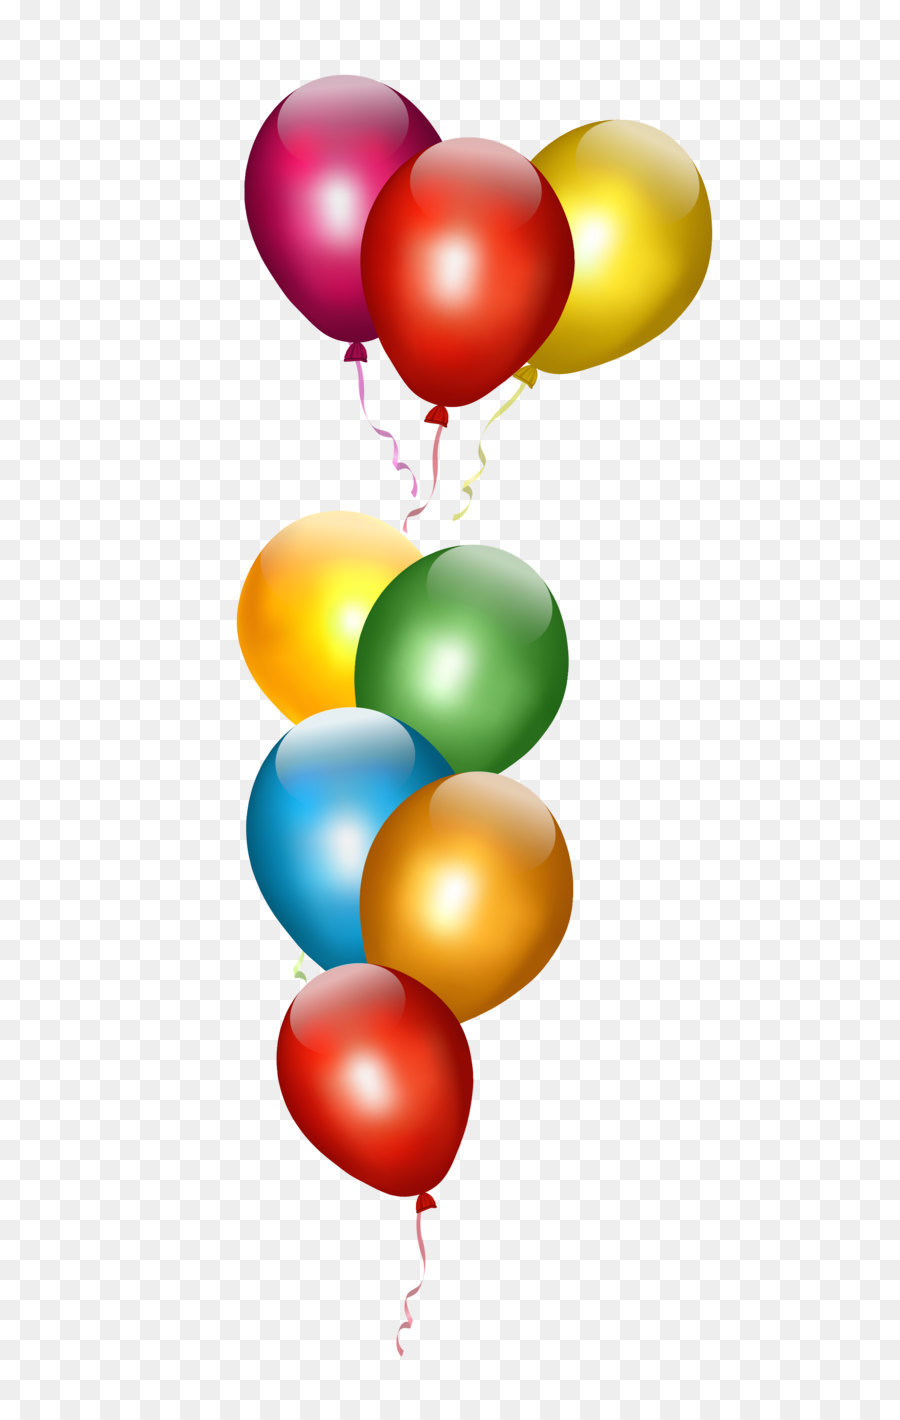 Birthday Balloon Party Clip art.